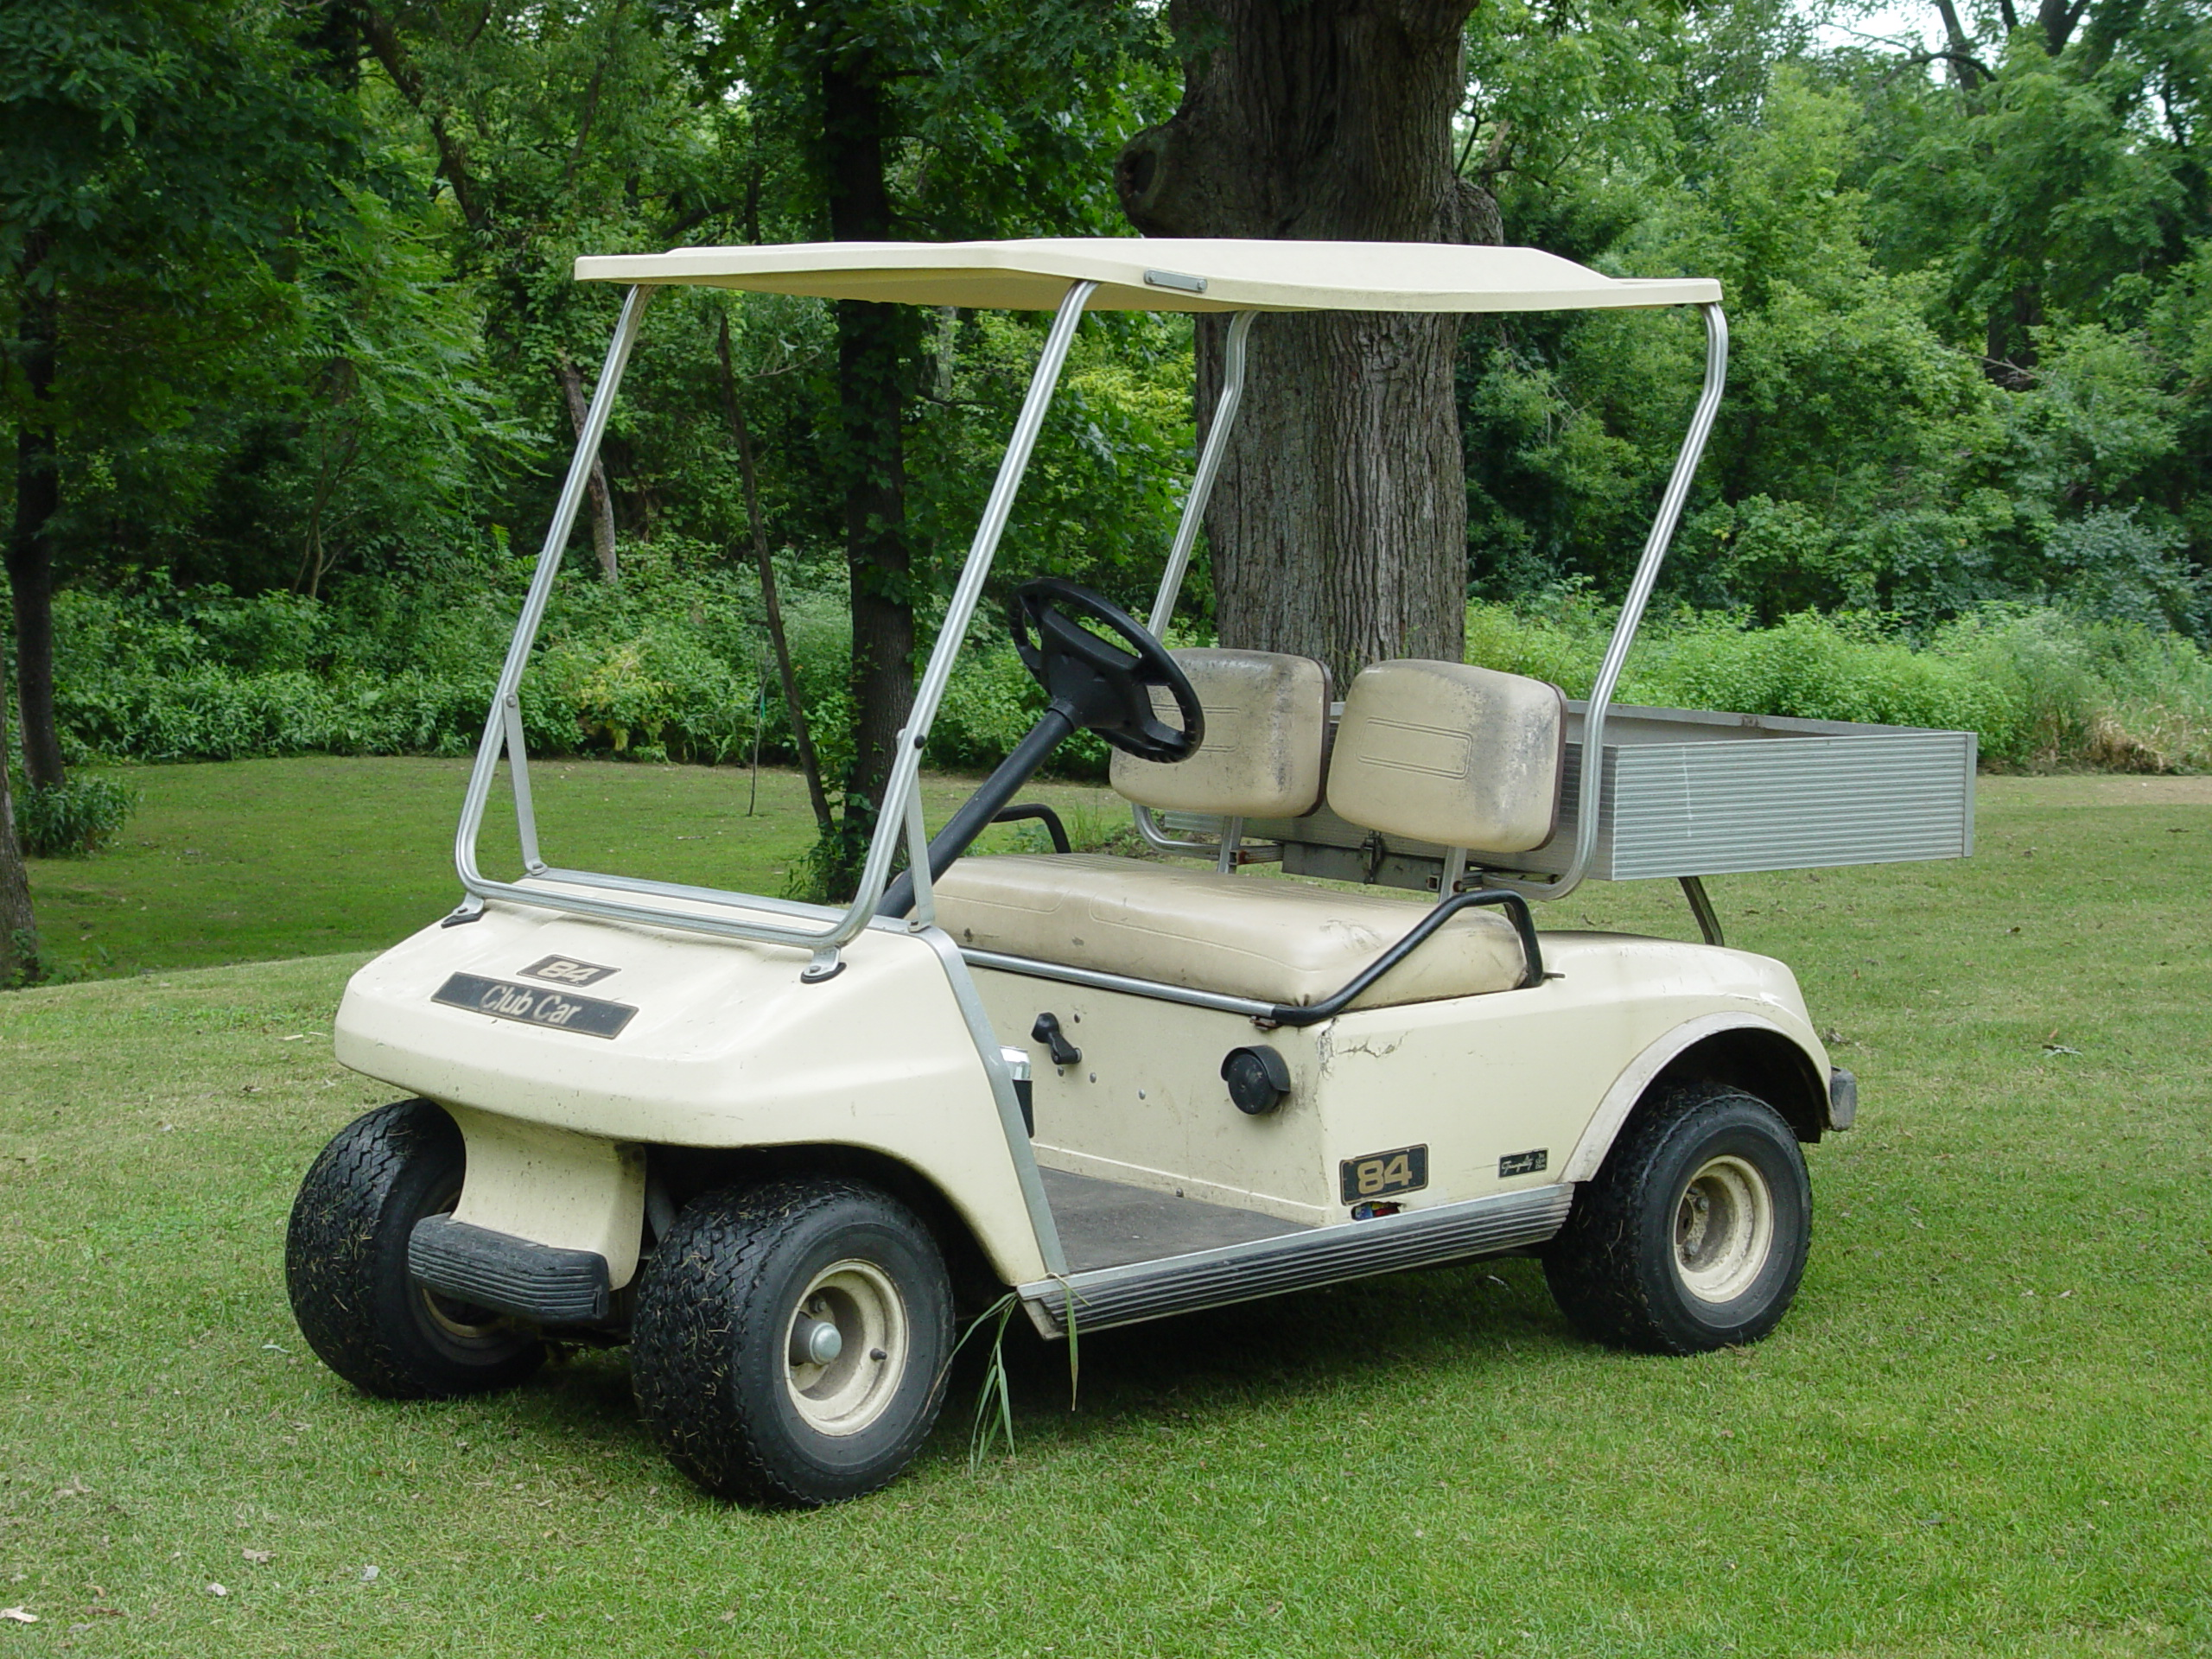 http://upload.wikimedia.org/wikipedia/commons/5/58/Golfcart.JPG